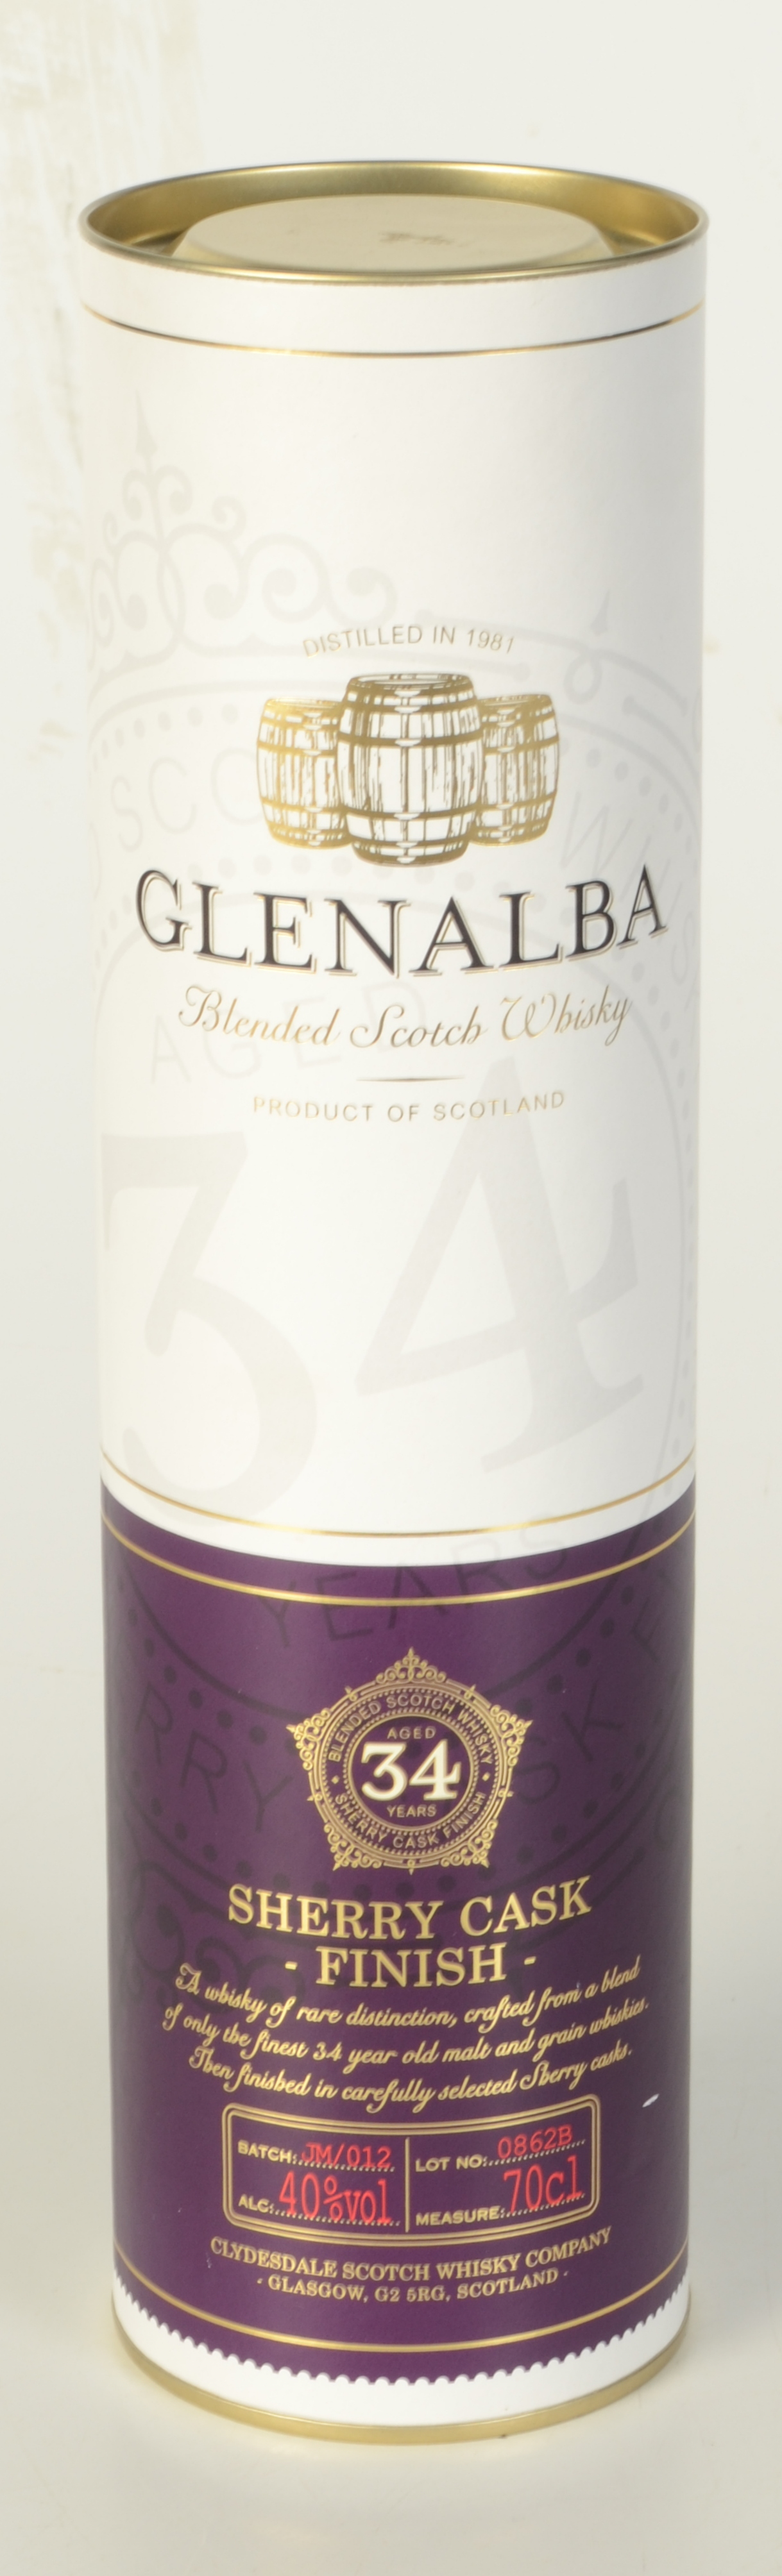 Lot 55 - A Glenalba 34 year old blended Scotch whisky, in original tube, 70cl, 40% vol.